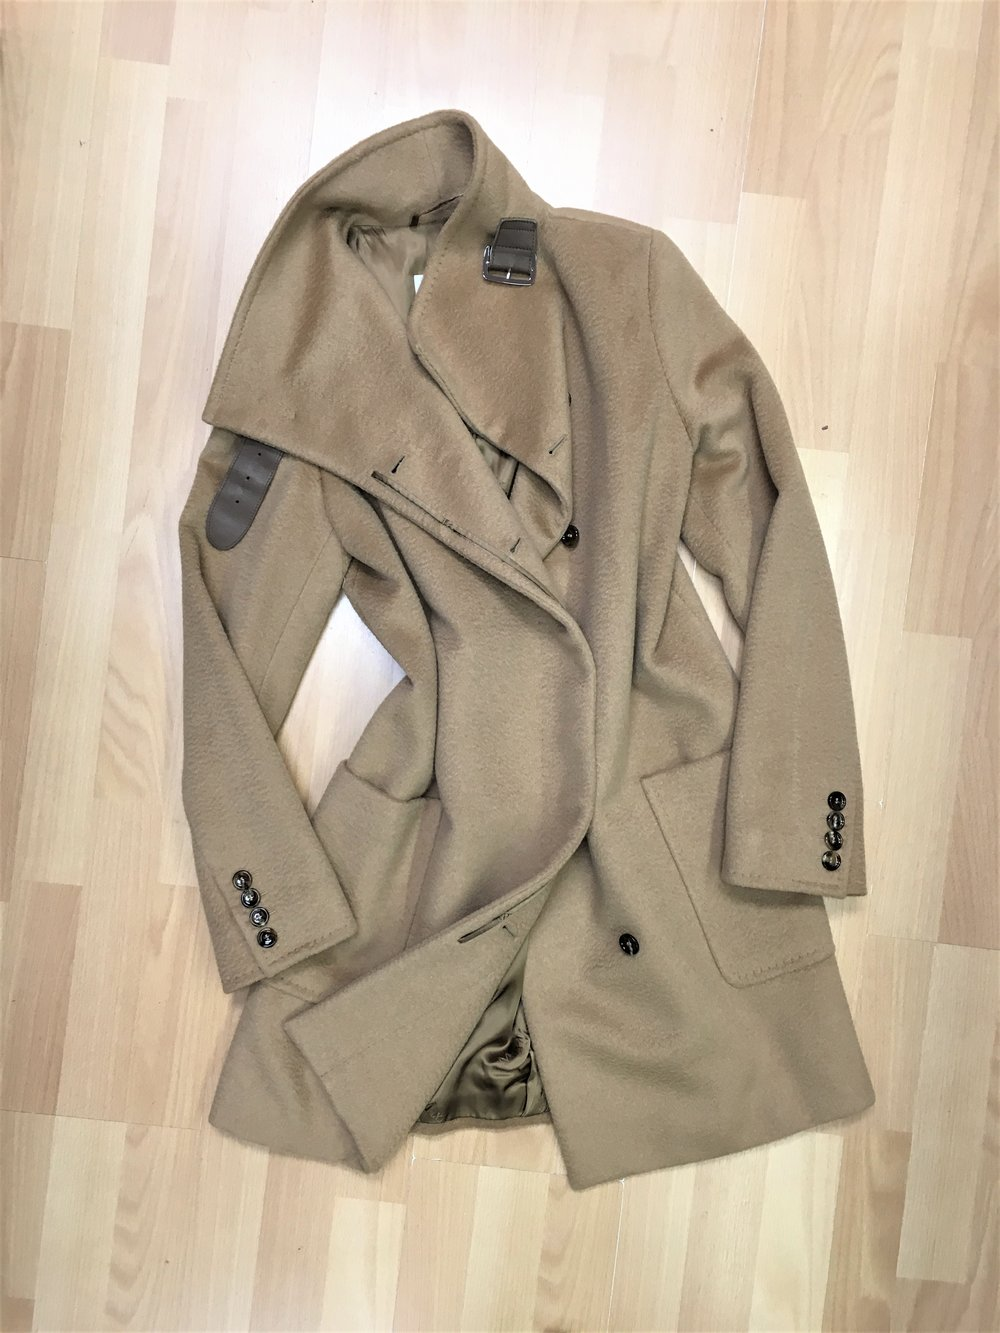 MAX MARA - Camel hair coat with buckle detail. Size 8/10, $550. (original retail: $2,800)